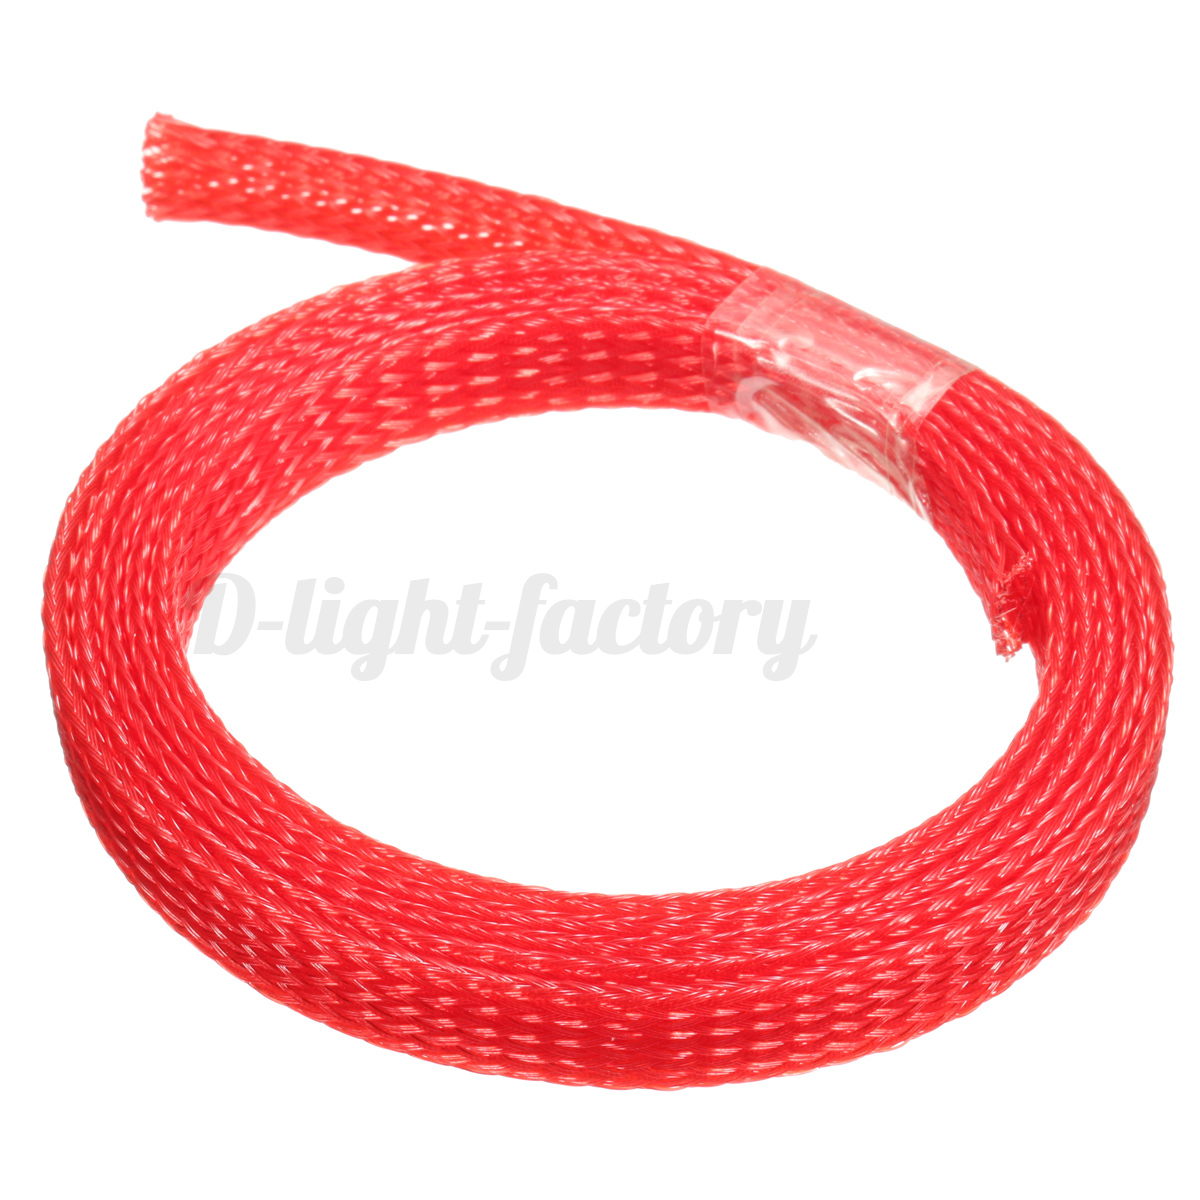 wire harness mesh 1pcs 1m 8mm braided wire tidy mesh expandable sleeving ... harley chopper wire diagram 7 wire harness